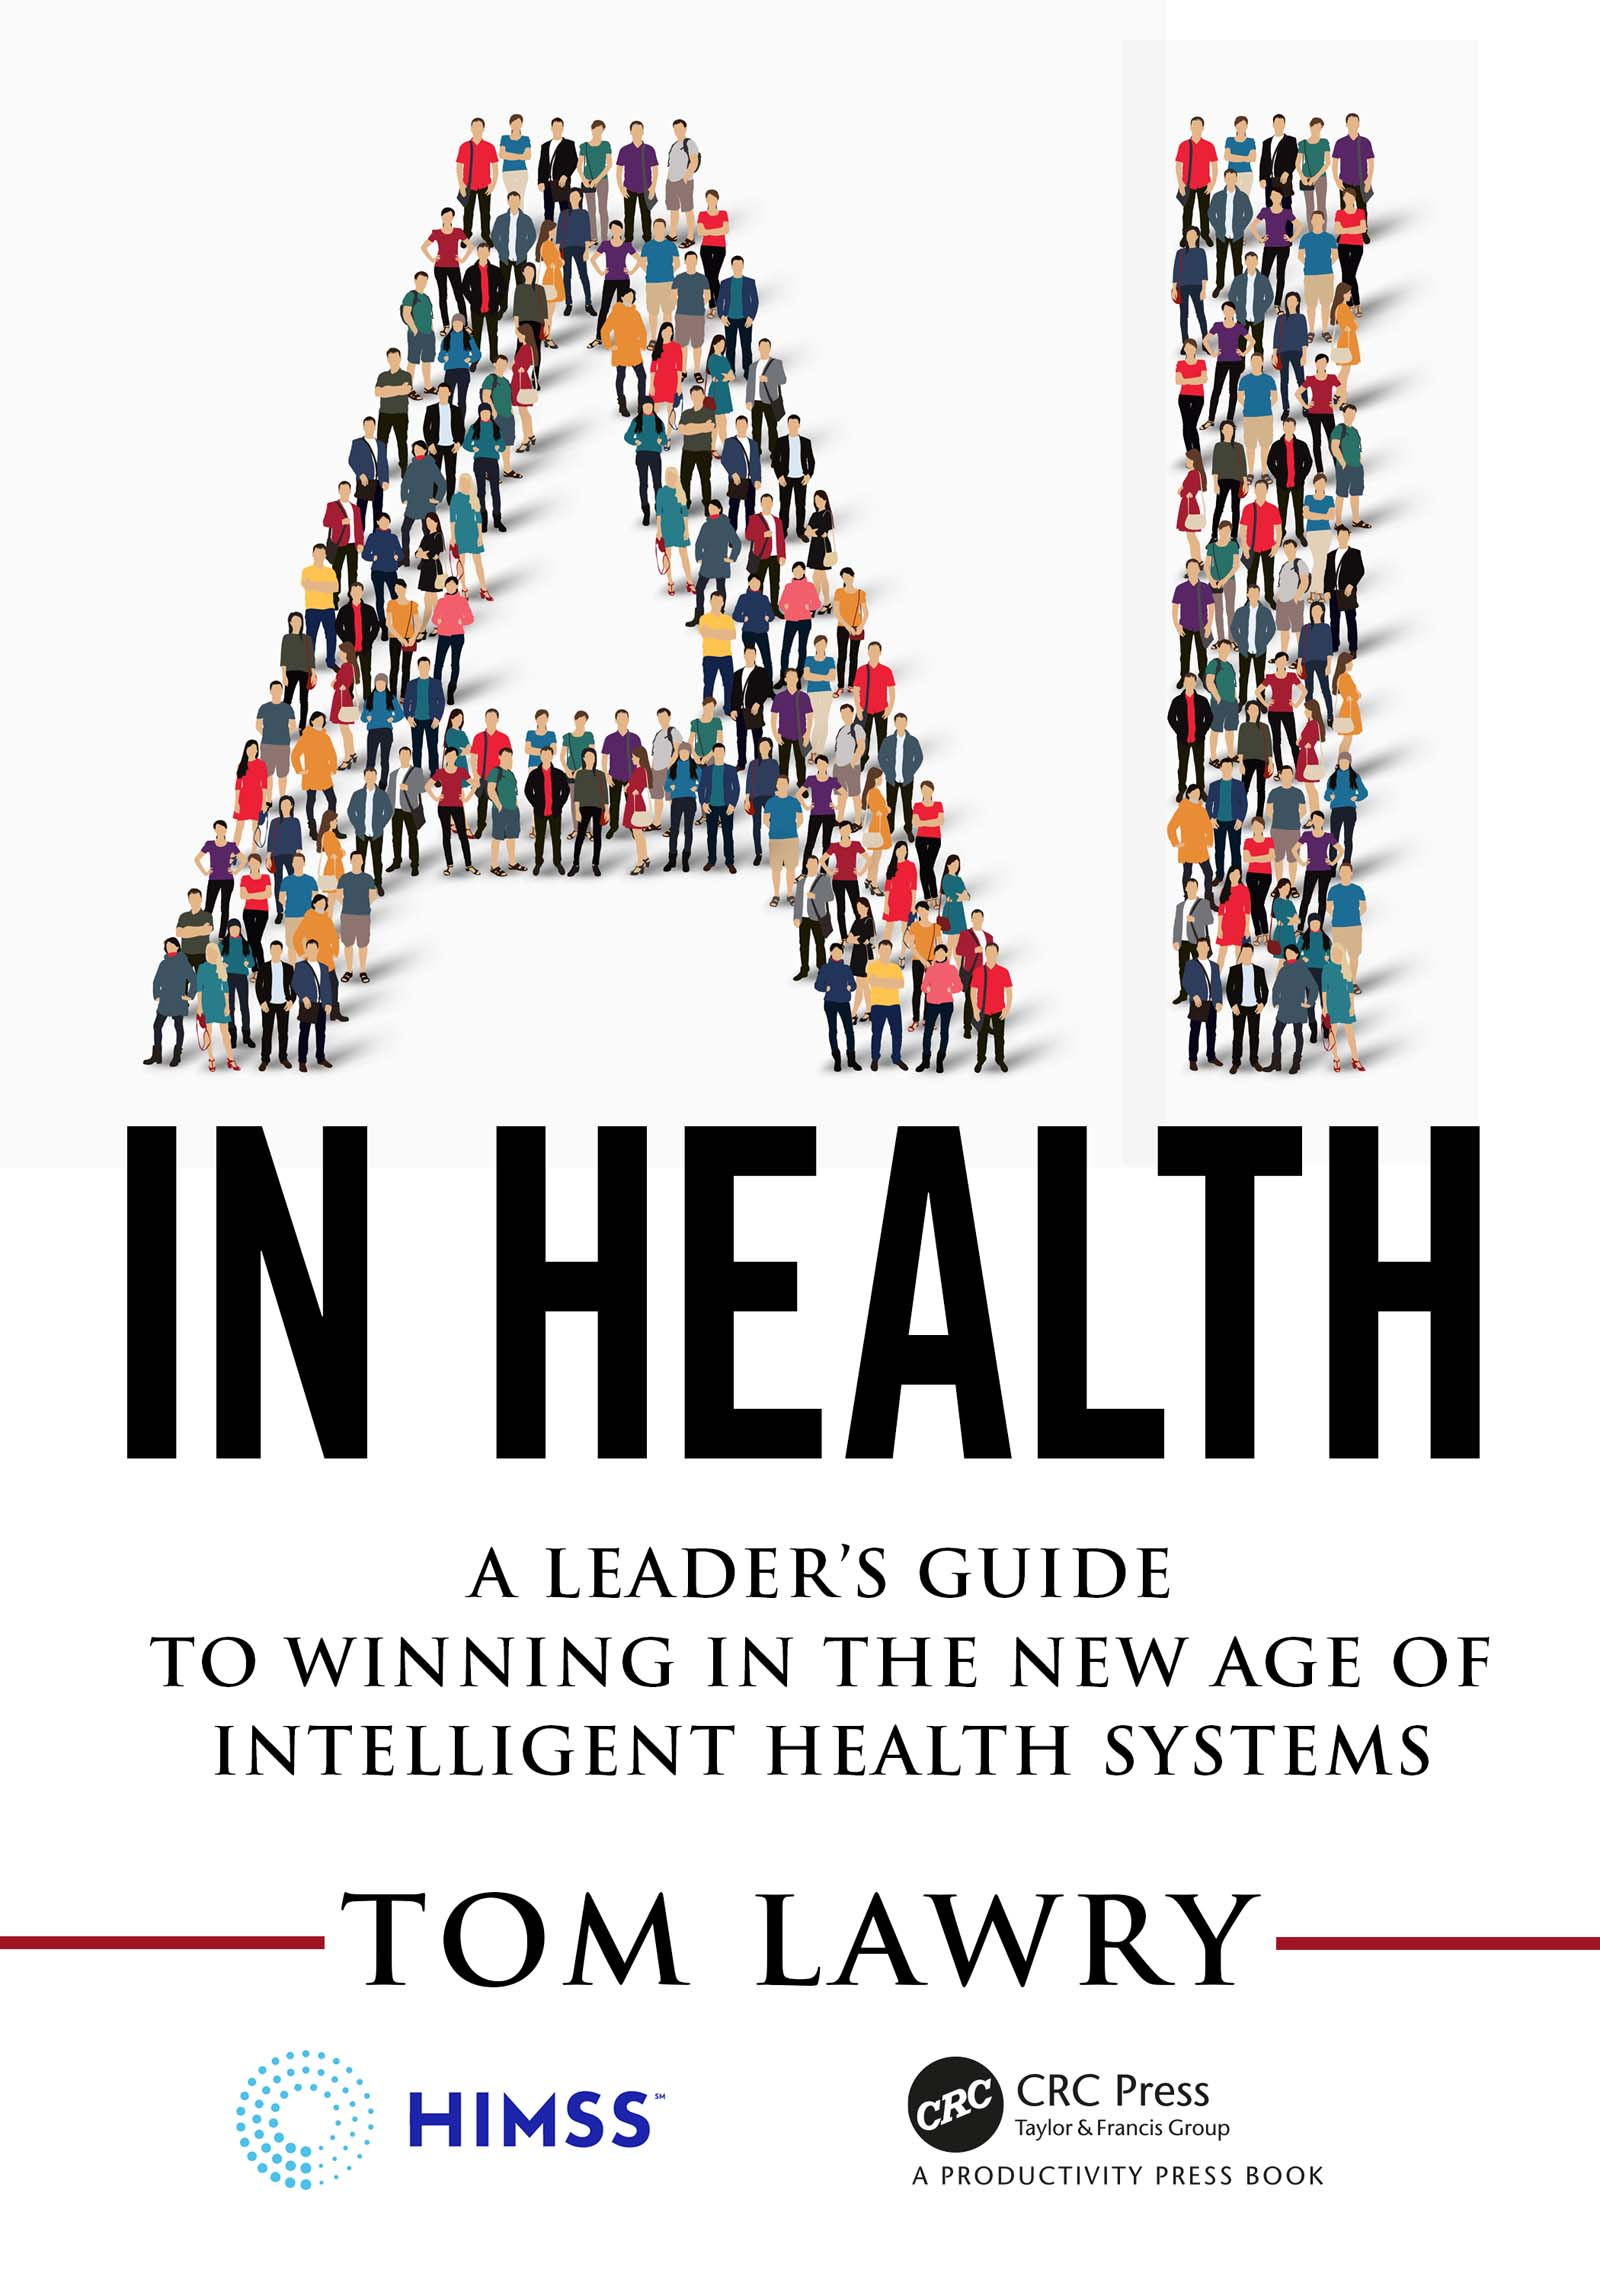 AI in Health: A Leader's Guide to Winning in the New Age of Intelligent Health Systems book cover